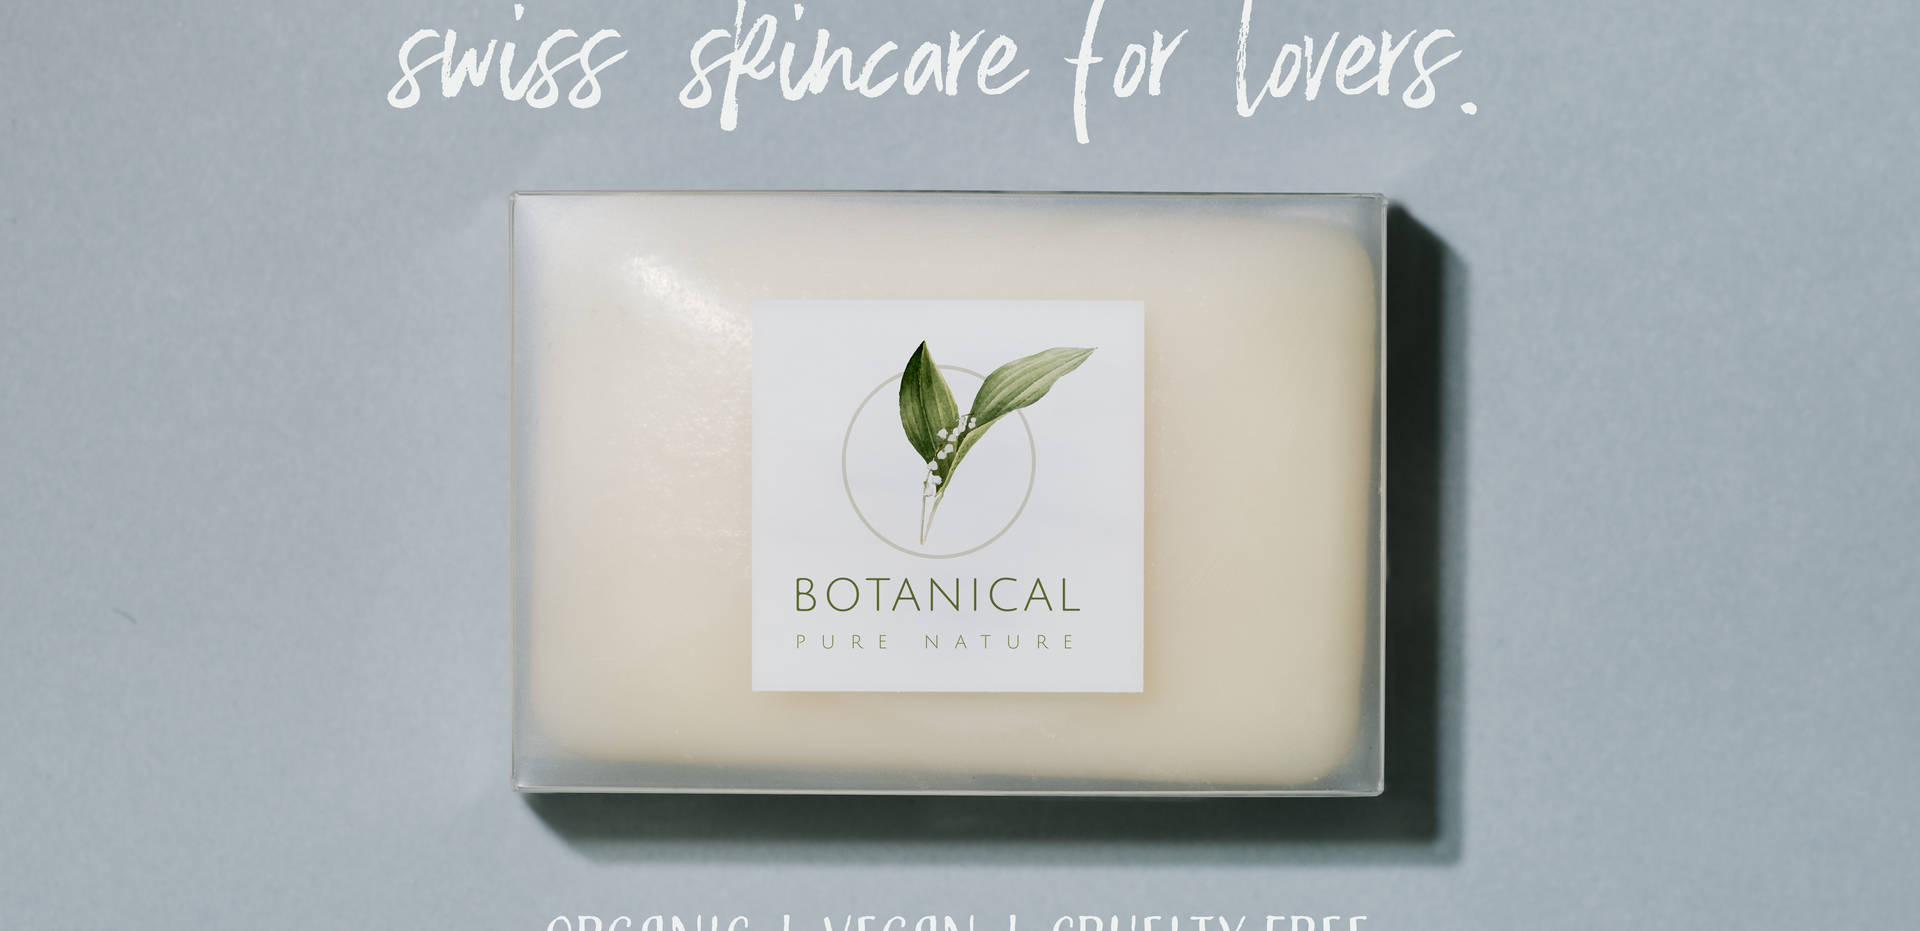 Swiss Skincare for Lovers Digital Ad by Kaitlynn Stone